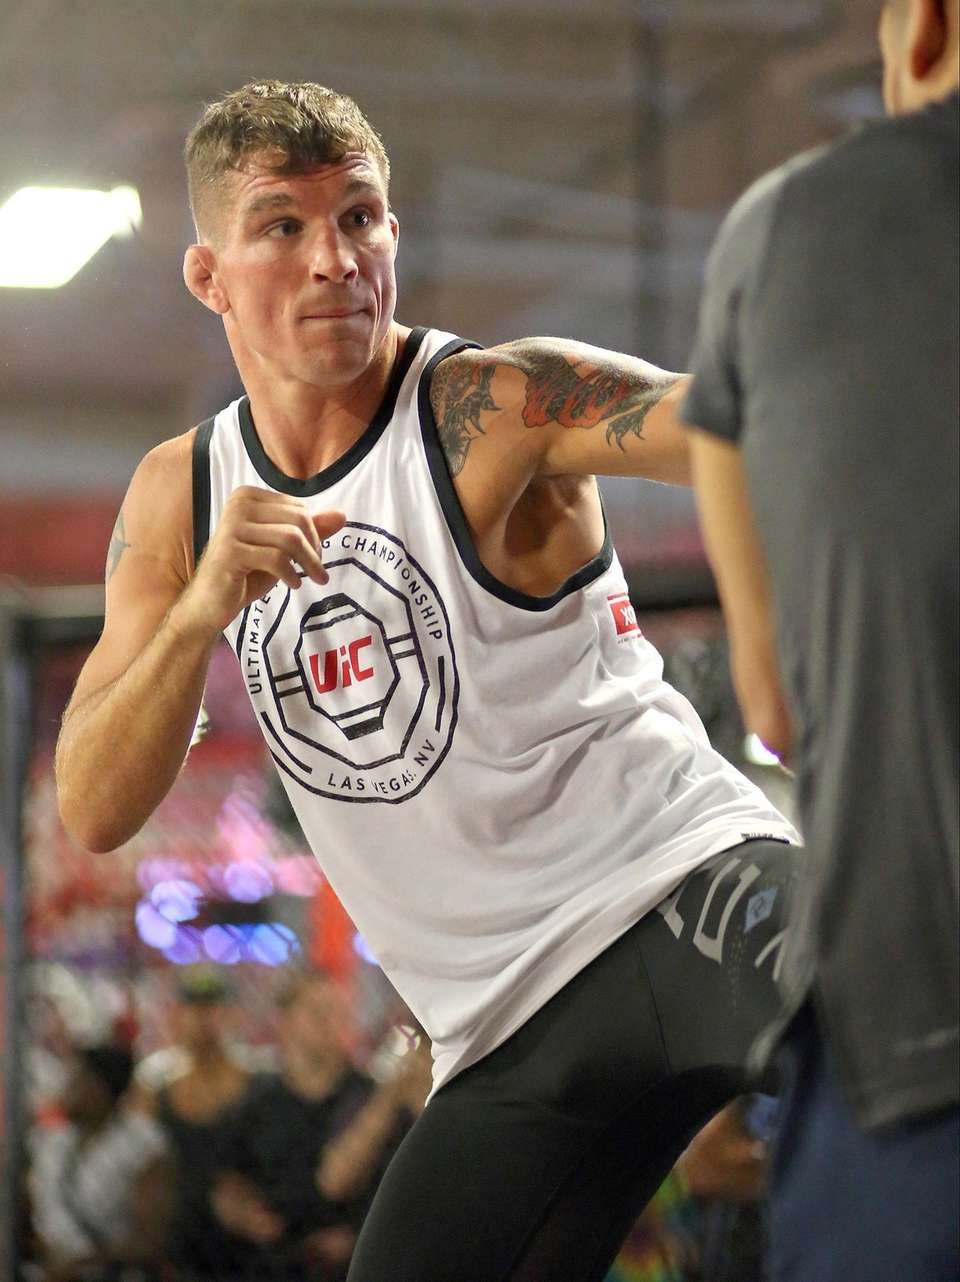 Darren Elkins prepares for upcoming fight at the